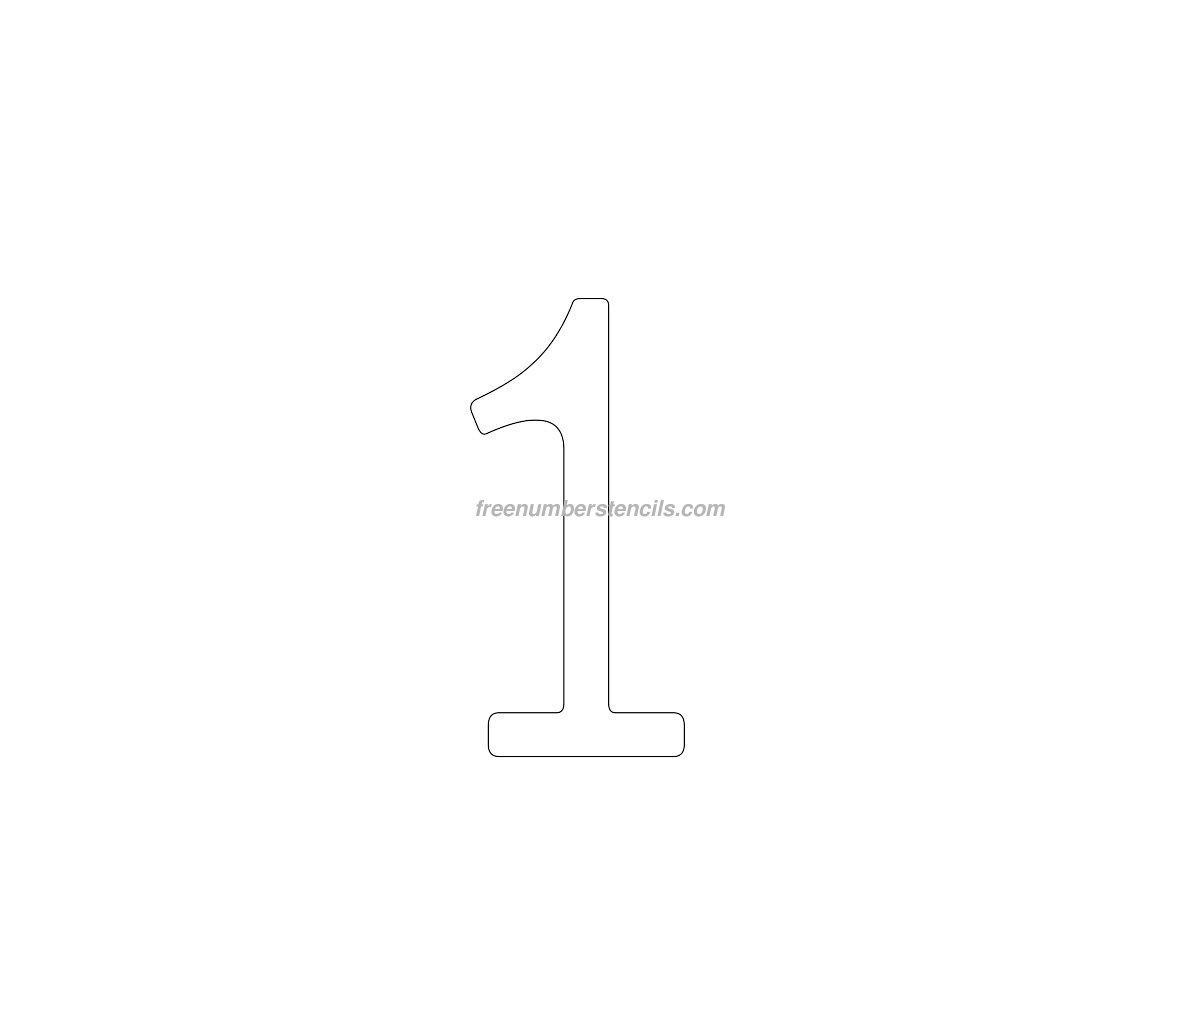 number 2 cake template - cake free 1 number stencil